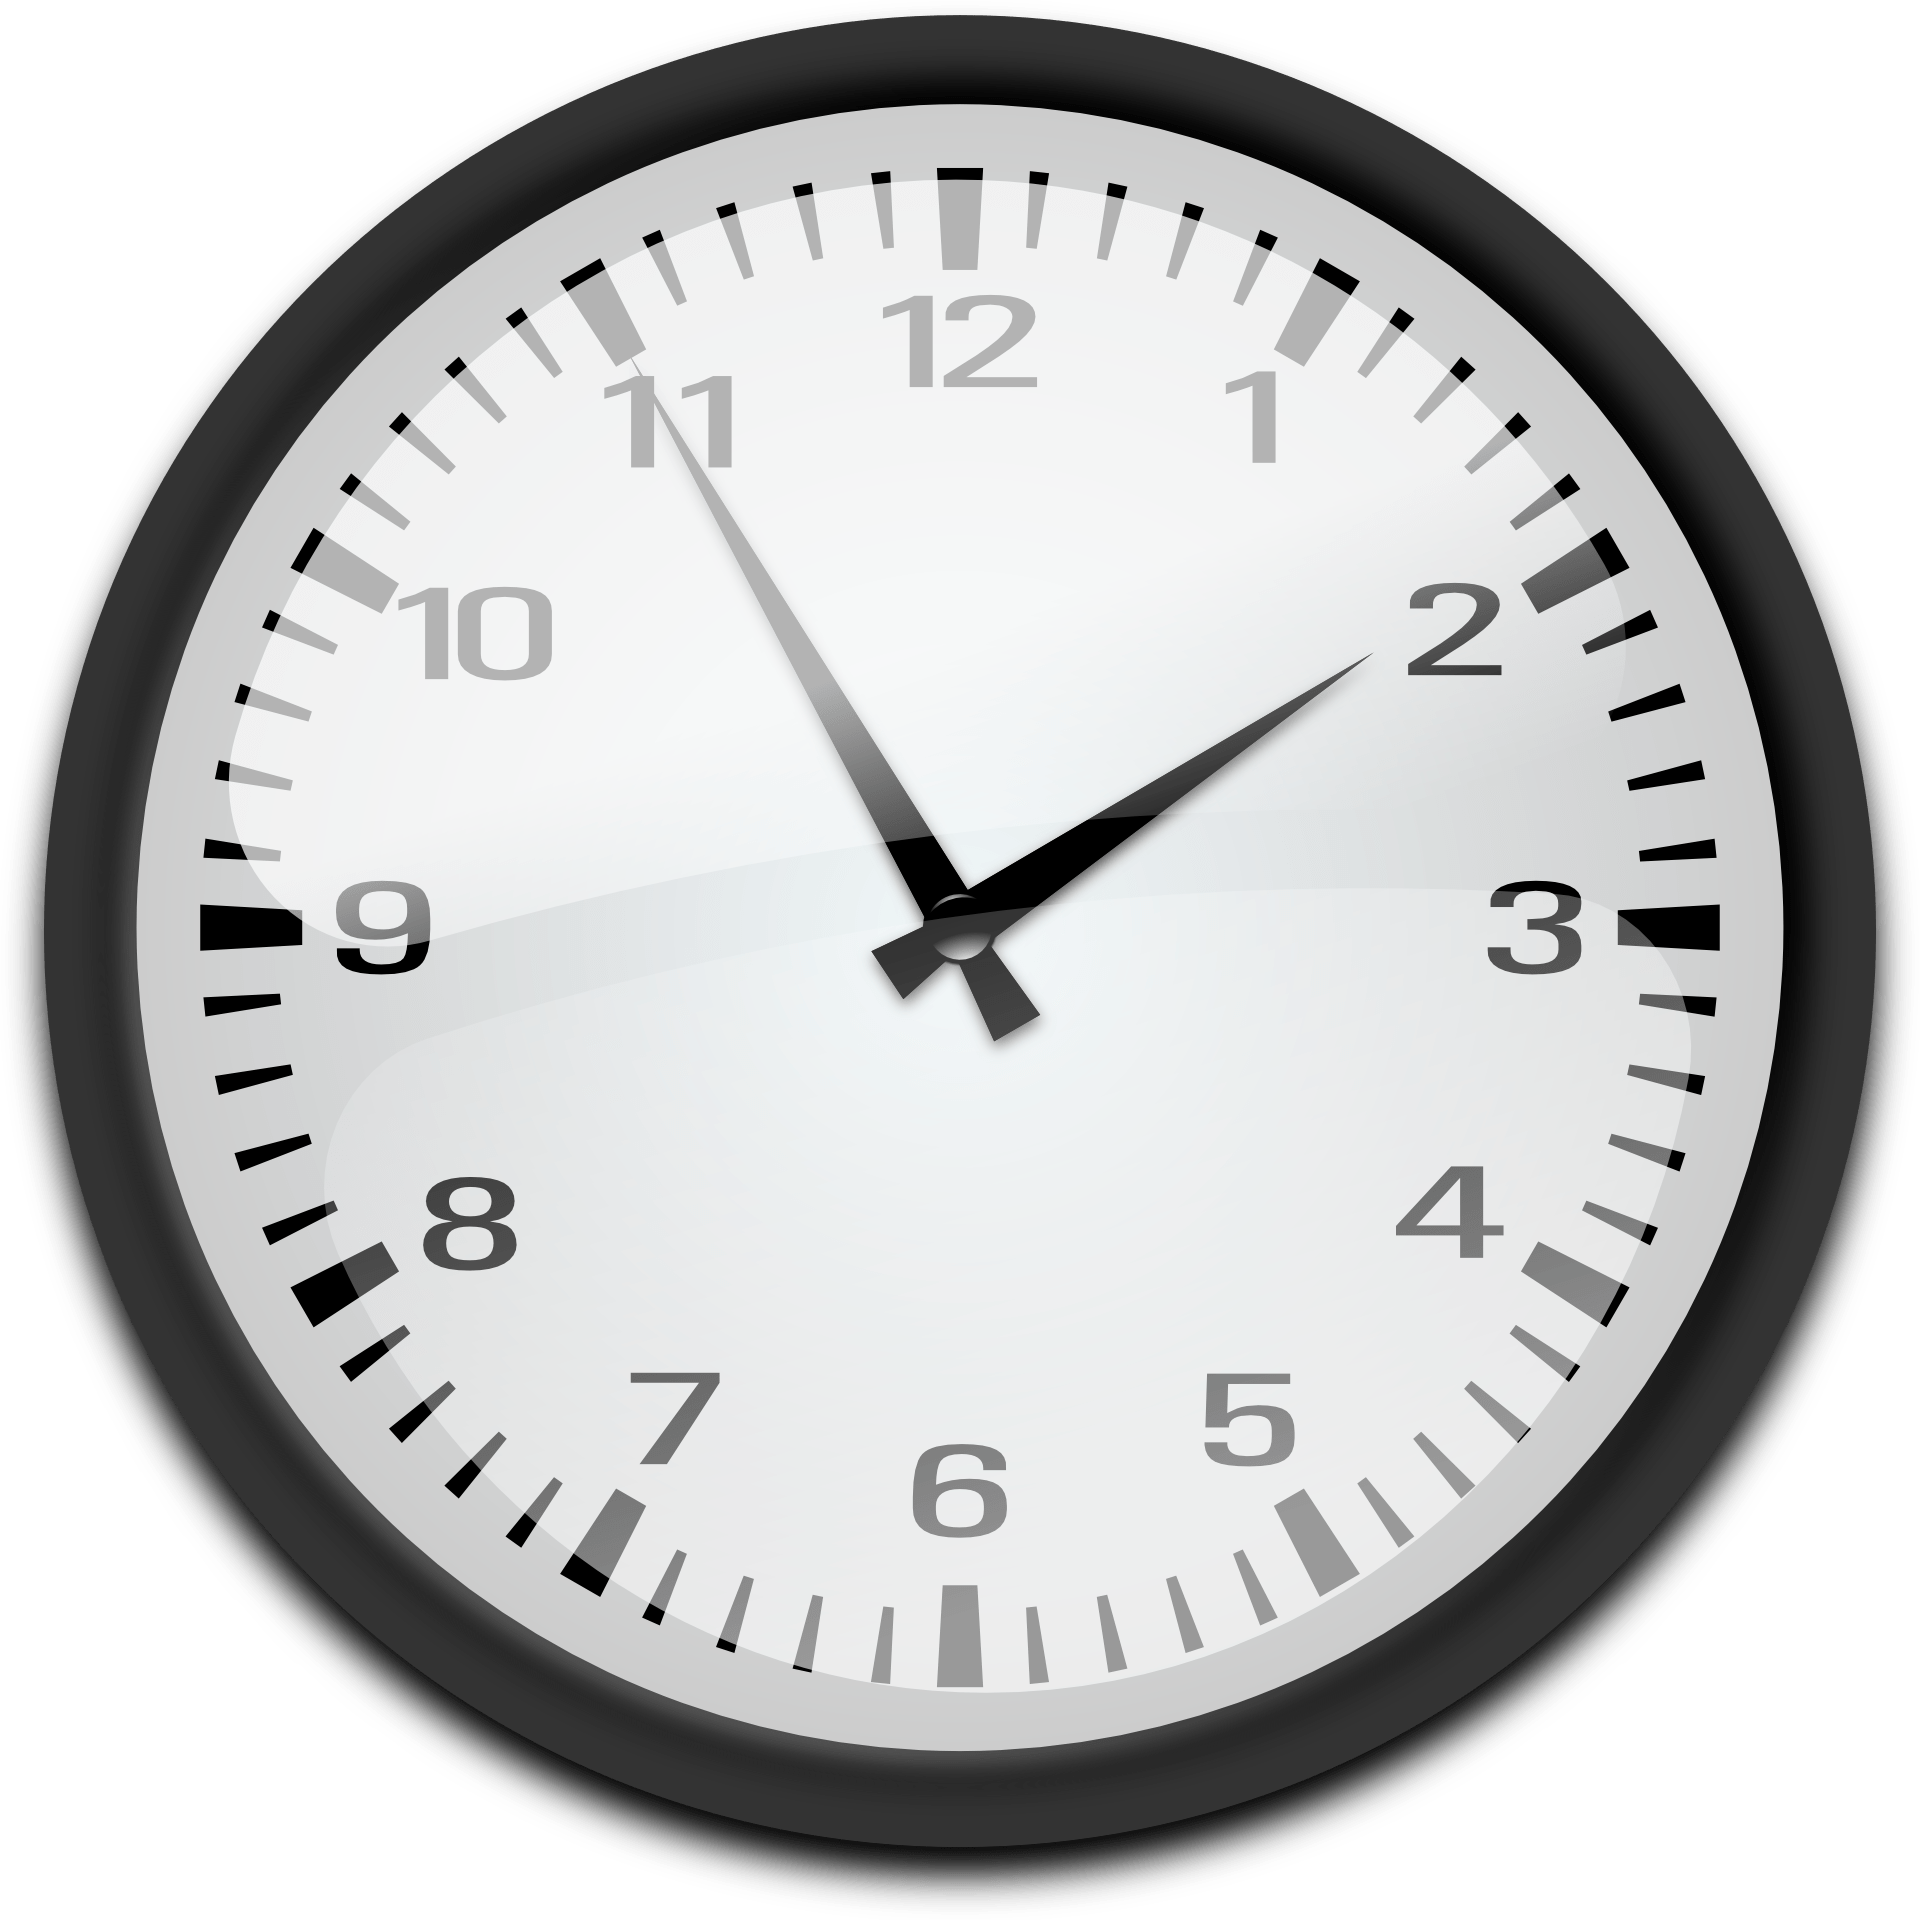 Online Analog Clock Revenge Of The Analog Clock Interesting Thing Of The Day